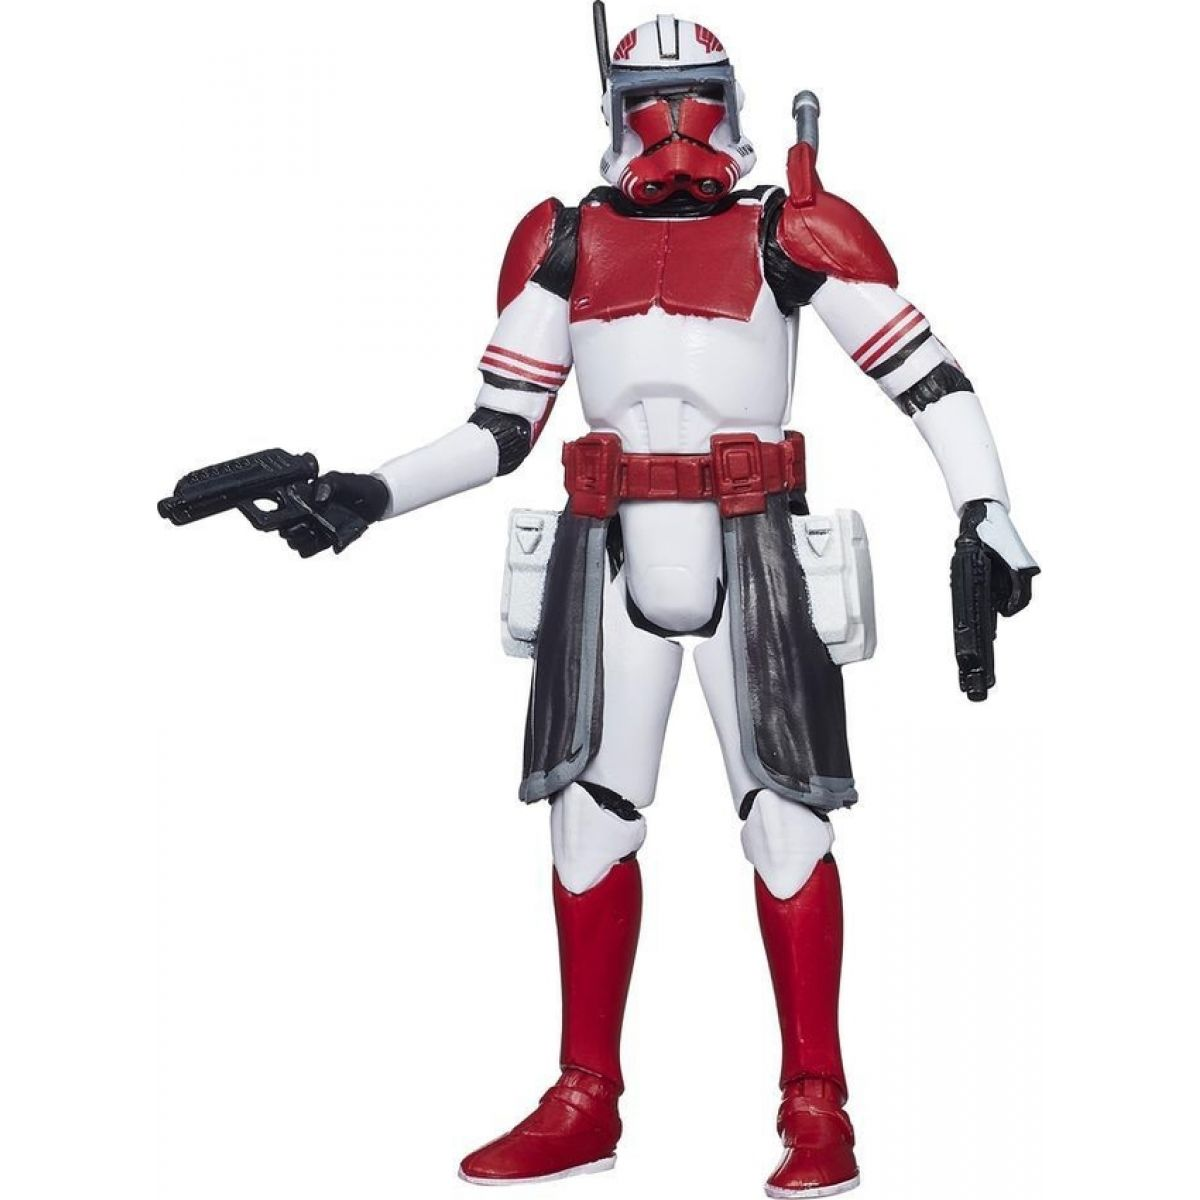 Star Wars The Black Series Hasbro A5077 - Commander Thorn